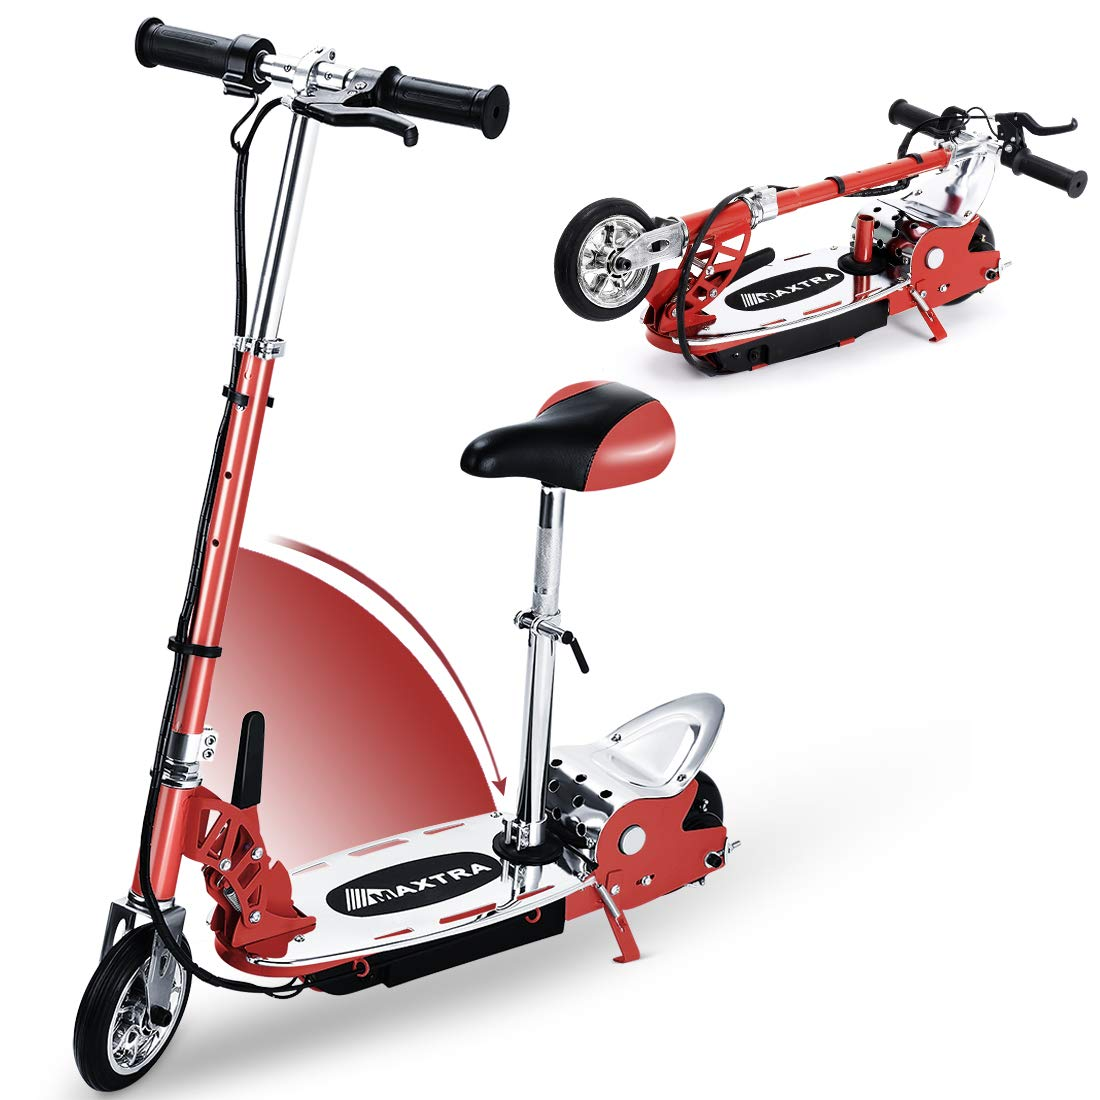 Overwhelming Upgrade E120 Adjustable Handlebar Height and Seat Folding Electric Scooter with Removable Seat for Kids,177lbs Max Weight Capacity Motorized Bike, up to 10 mph by Overwhelming